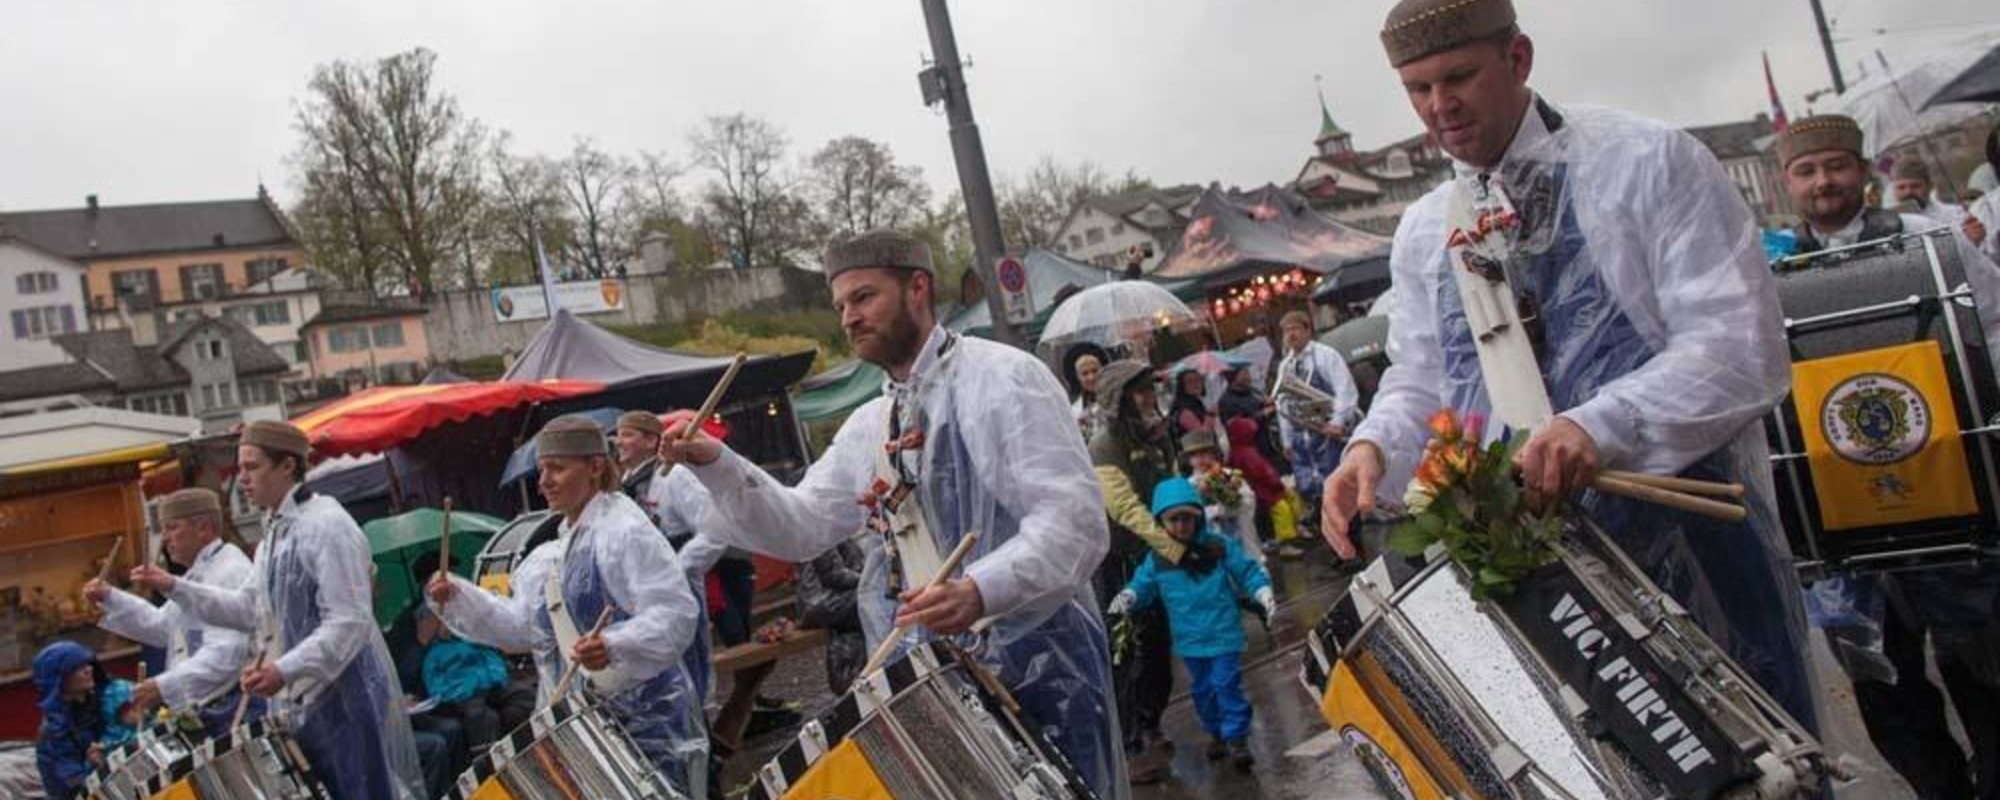 Photos of People Trying to Have a Good Time at a Rainy Spring Parade